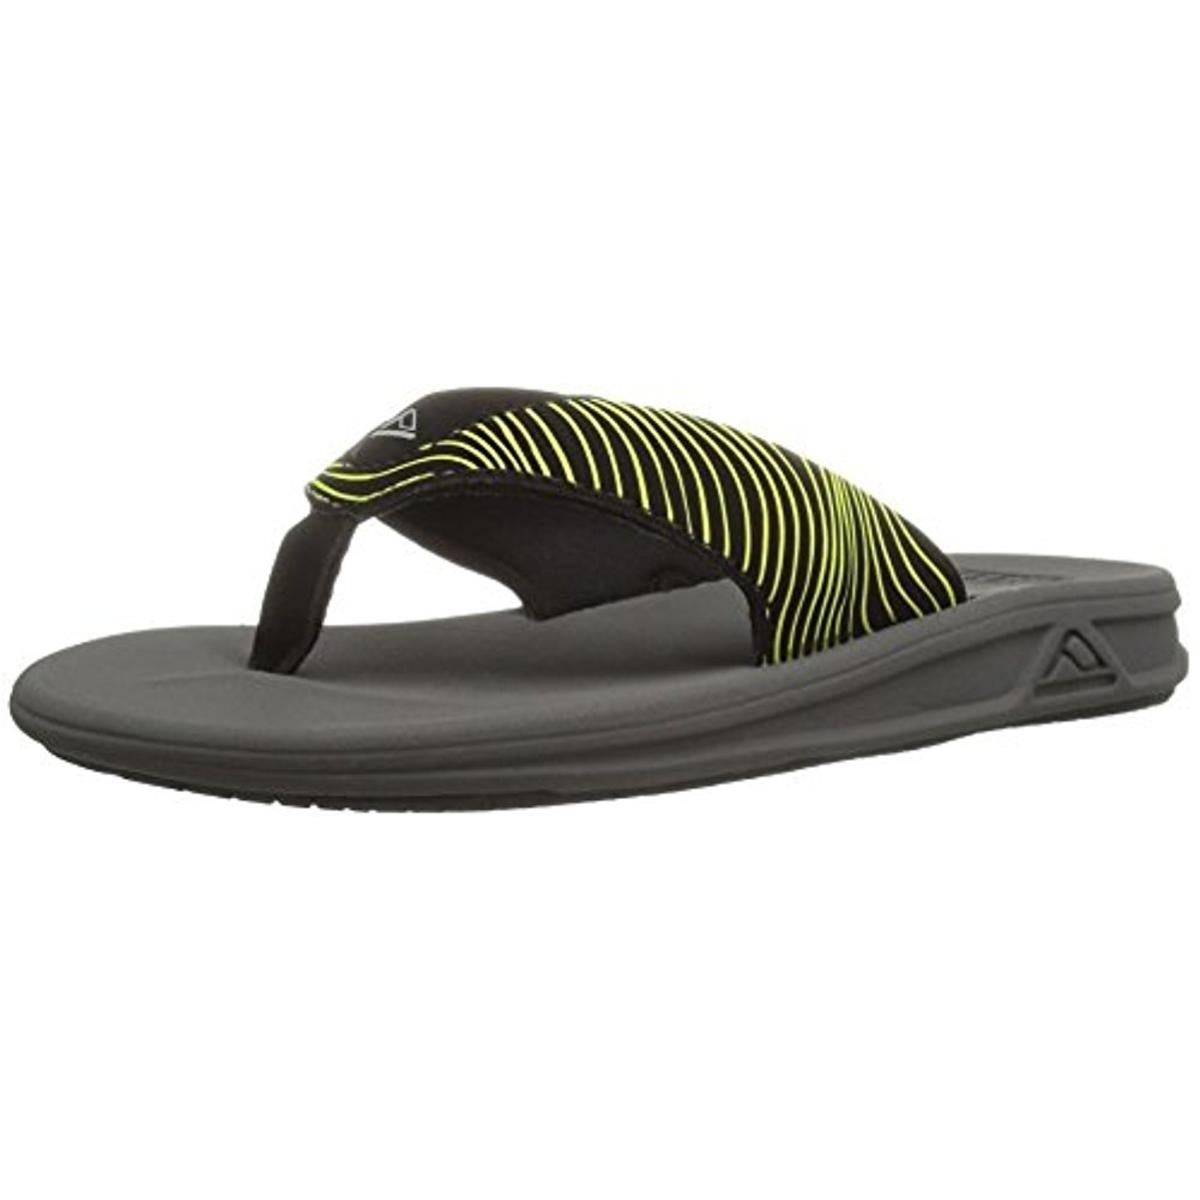 25ae73b40 Shop Reef Boys Grom Rover Prints Flip-Flops Printed Man Made - Free  Shipping On Orders Over  45 - Overstock - 14945961